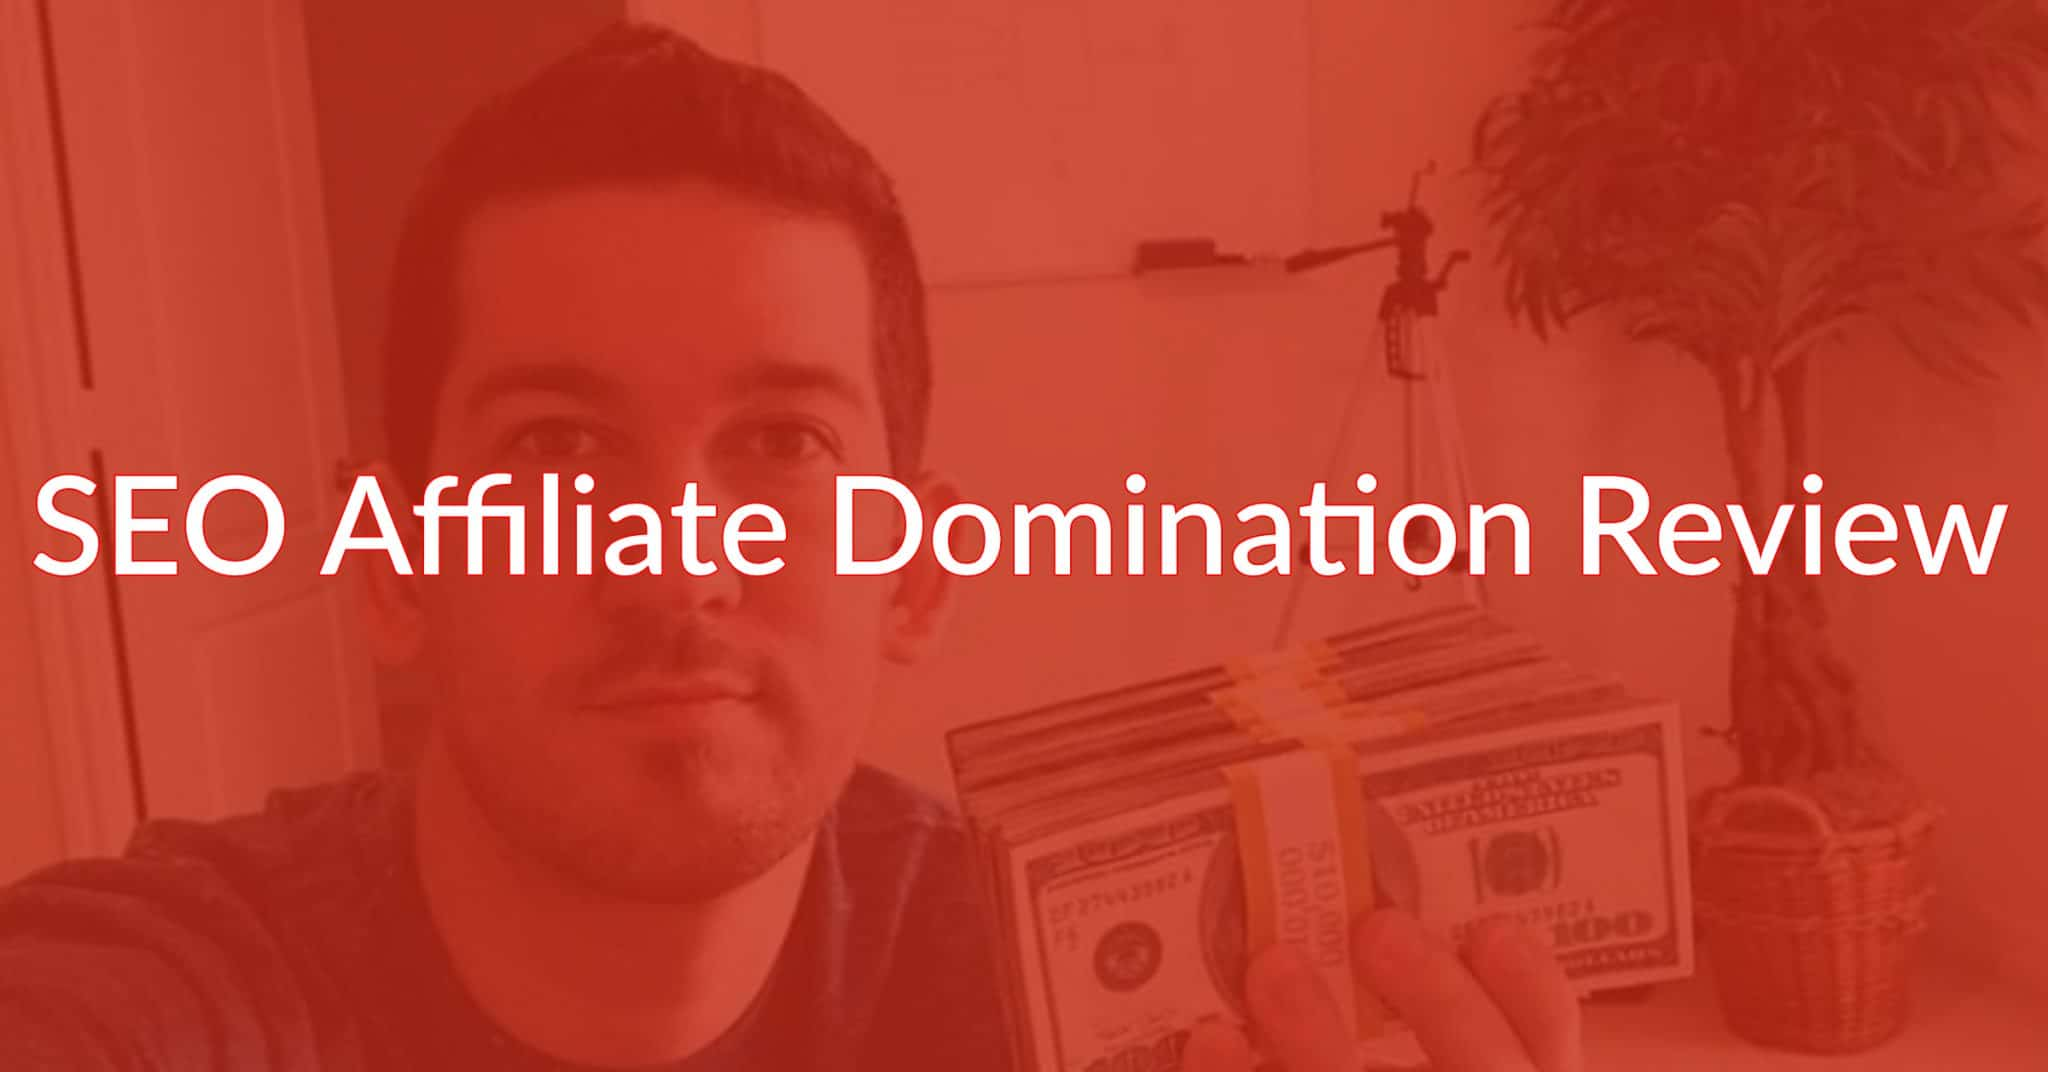 SEO Affiliate Domination Review: Is It Worth The Investment?